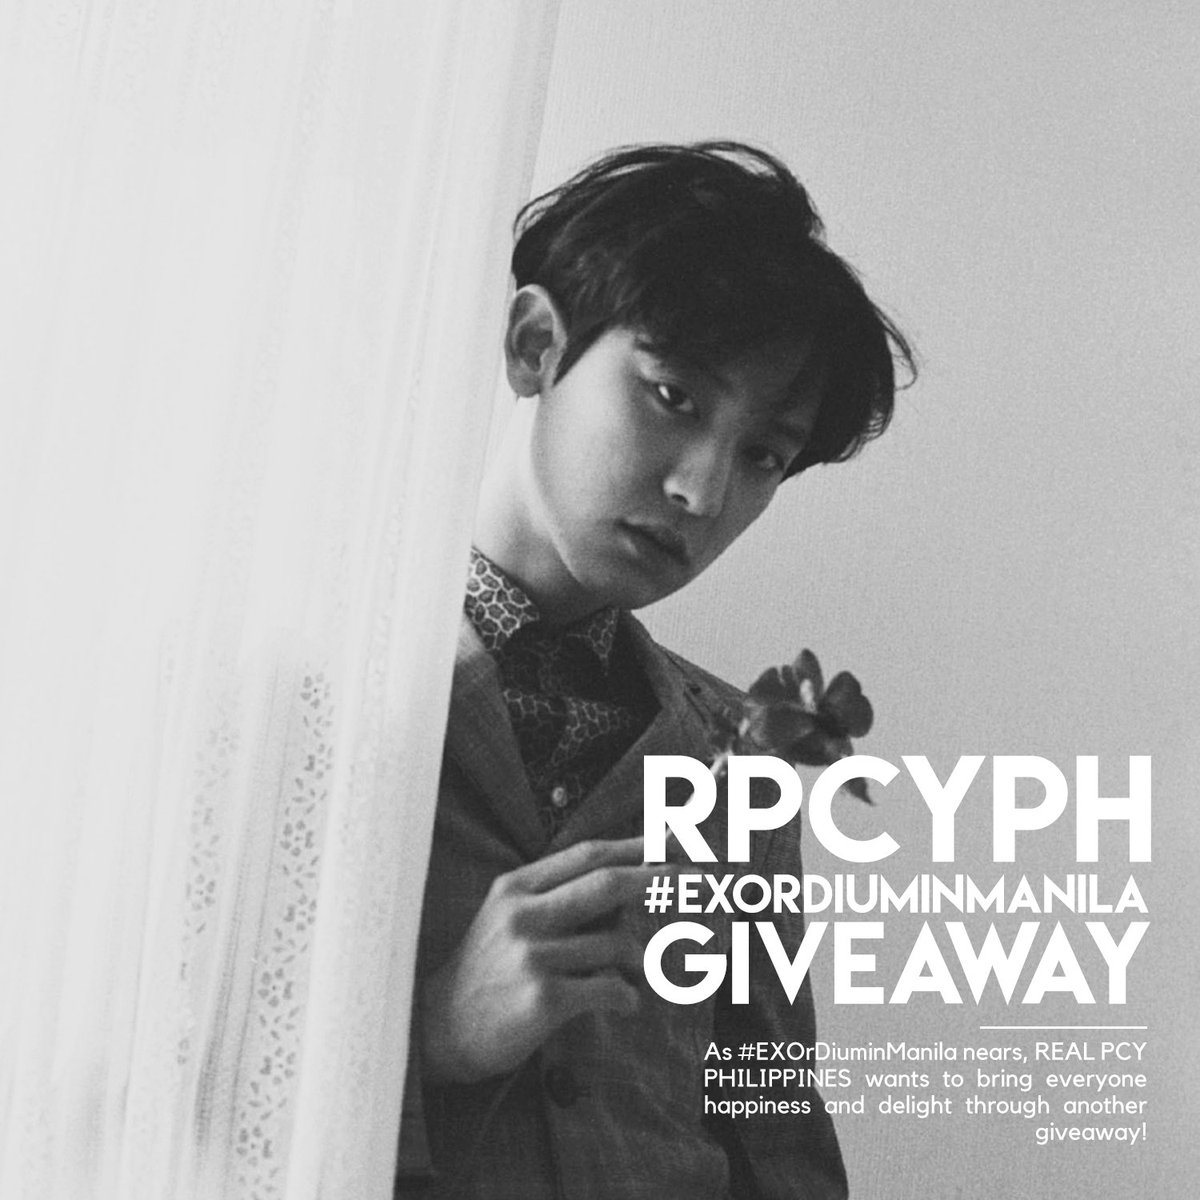 [RPCYPH #EXOrDIUMinManila GIVEAWAY] Kindly read the mechanics carefully. All the best of luck! <br>http://pic.twitter.com/1zKfbdueQq